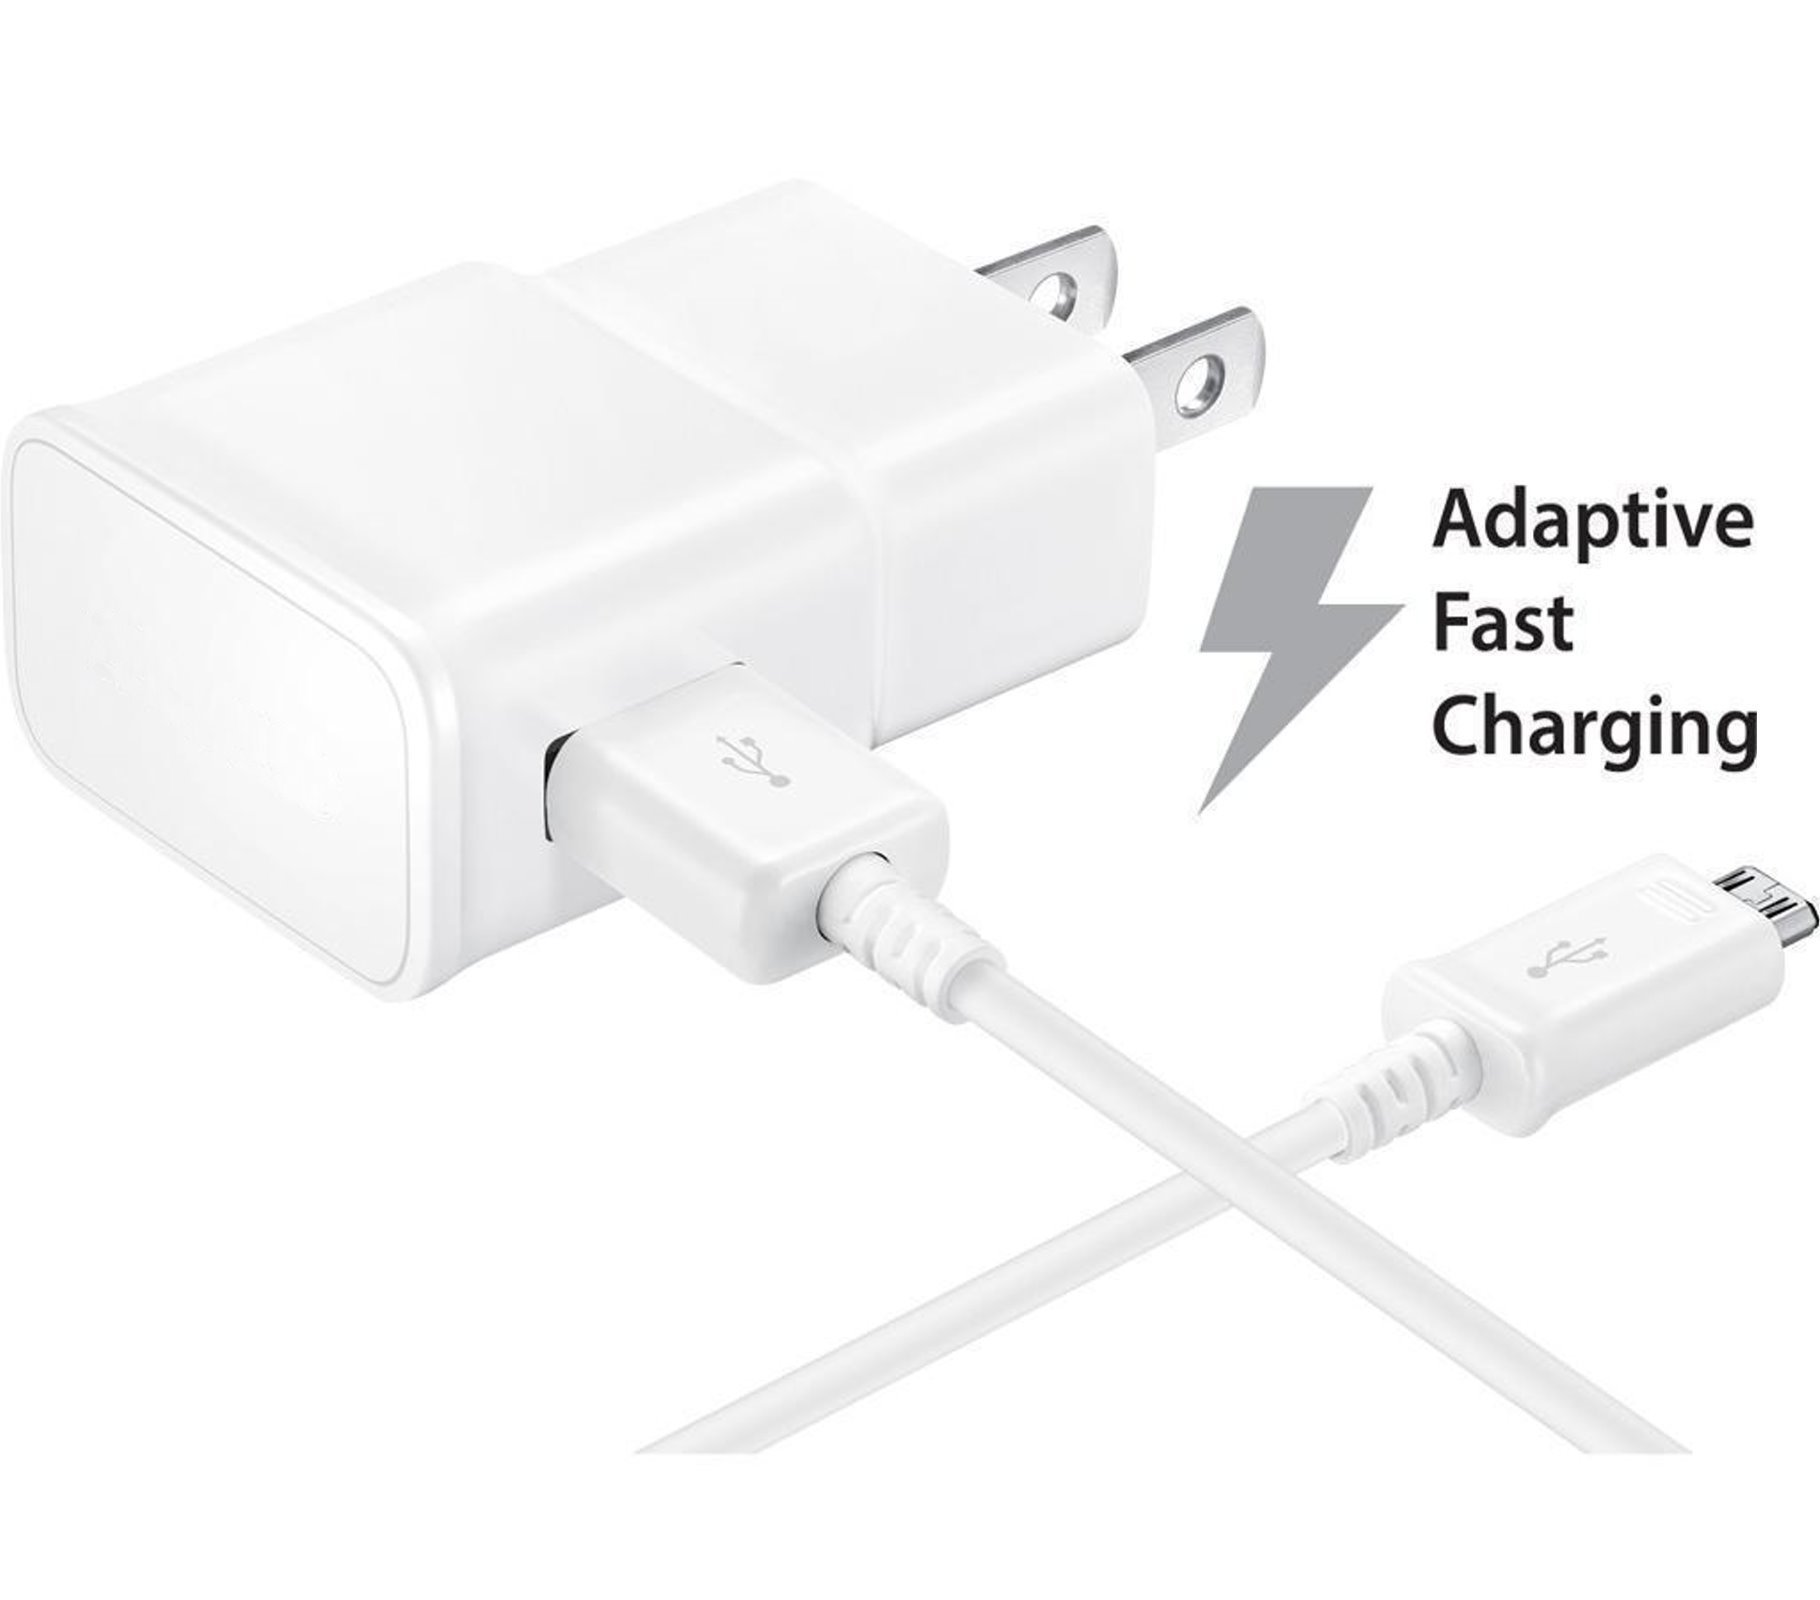 10 Pack - OEM Quick Fast Charger for Samsung Galaxy Tab S2 8.0-inch Cell Phones [Wall Charger + 5 FT Micro USB Cable] - AFC uses Dual voltages for up to 50% Fas